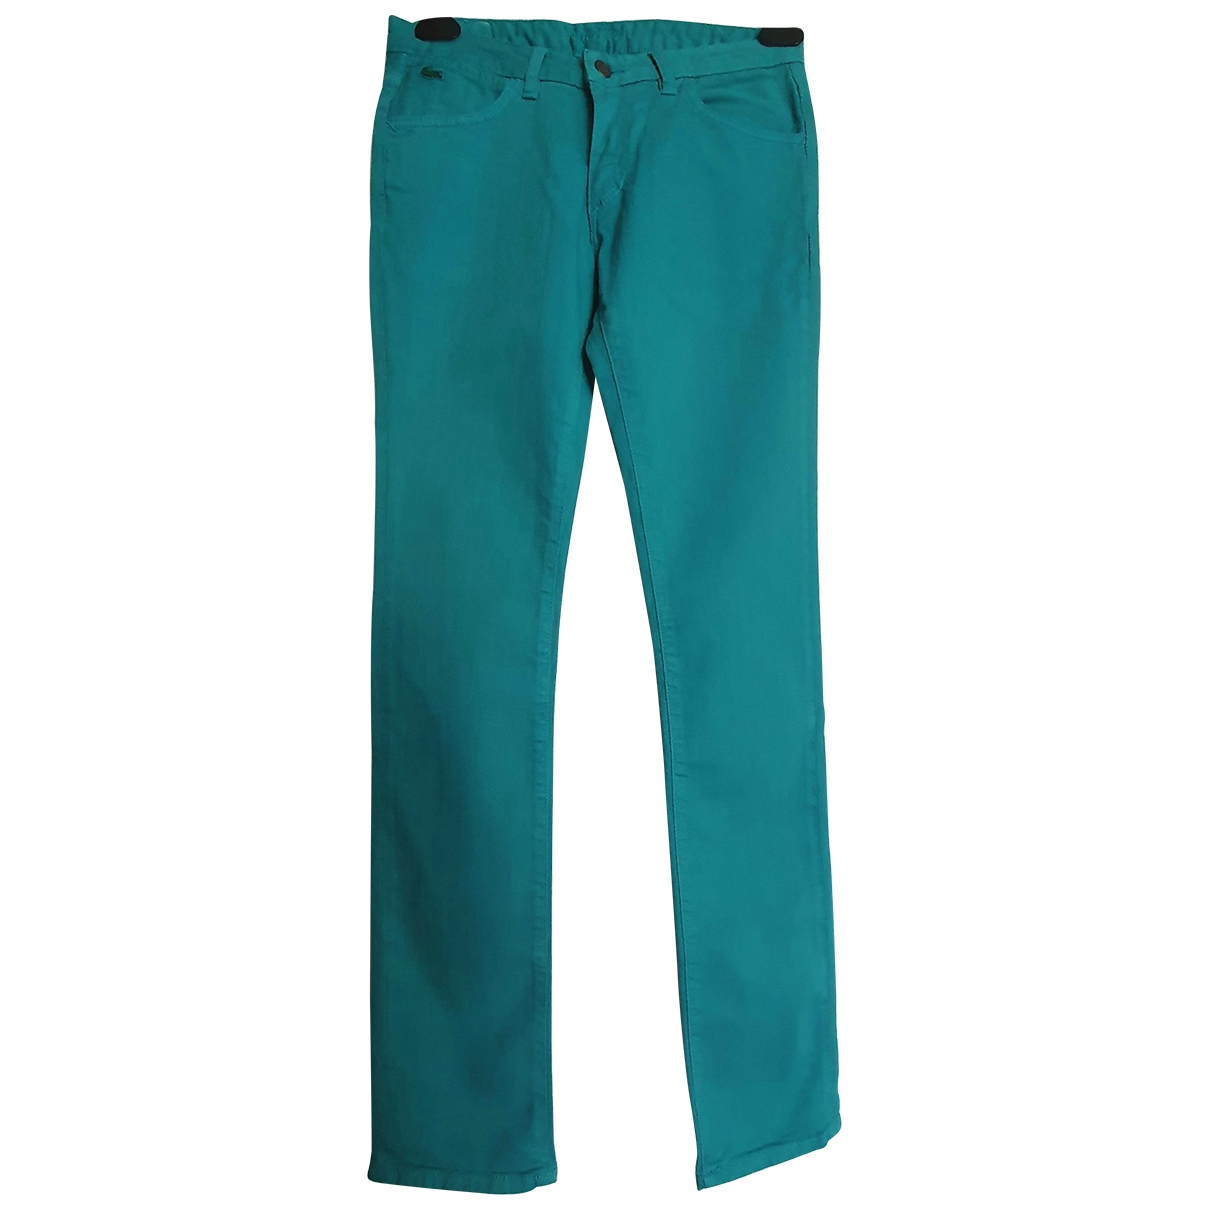 Lacoste \N Green Cotton Jeans for Women 38 FR